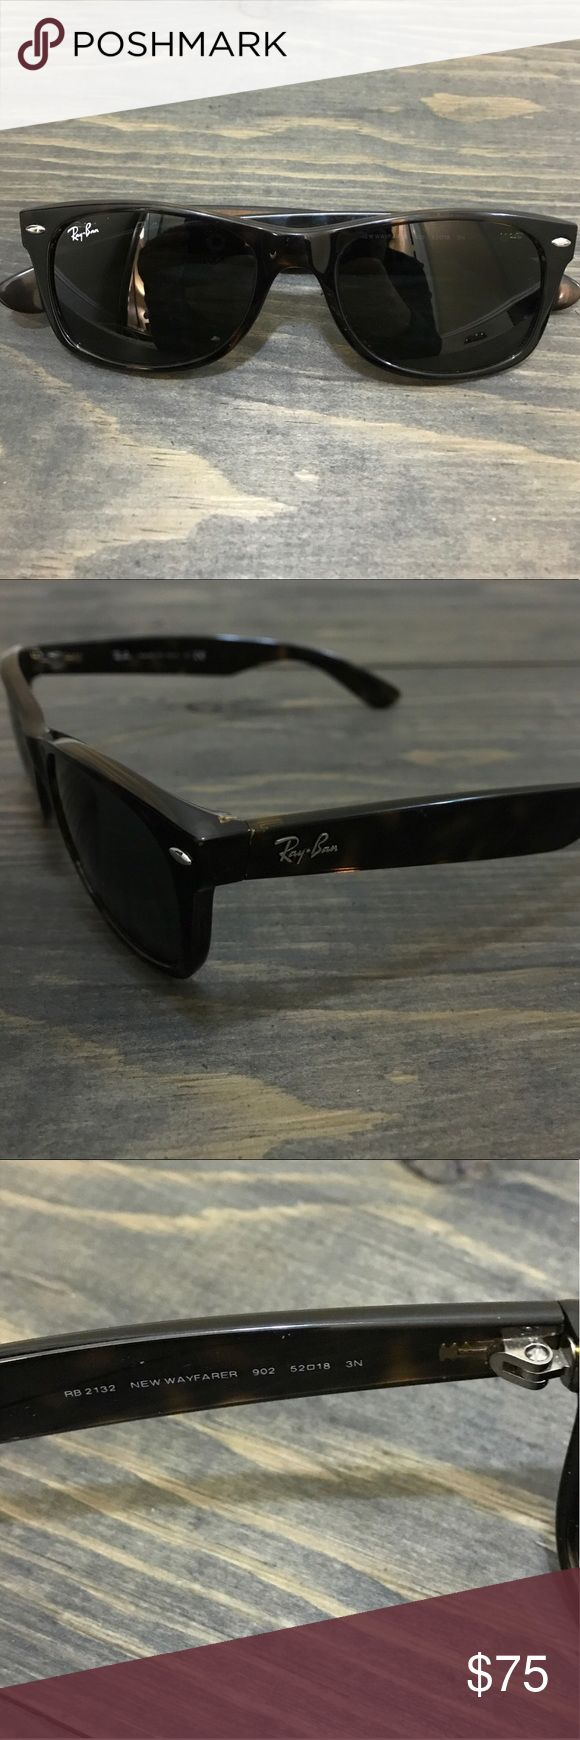 """Ray-Ban Wayfarer Sunglasses Tortoise frame glasses size 52-18. Light 1/2"""" scratch on the left lens and 1/4"""" scratch on the frame next to it -see photo 5. On the arms by the ear there is slight wear. I am being honest- glasses are in good condition but do have scuffing on the frame. I've tried to take photos to show it. AUTHENTIC! Cleaning cloth and case included. Case threading had come undone in one corner but is still useable and holds glasses.  Request more photos if you want to see…"""